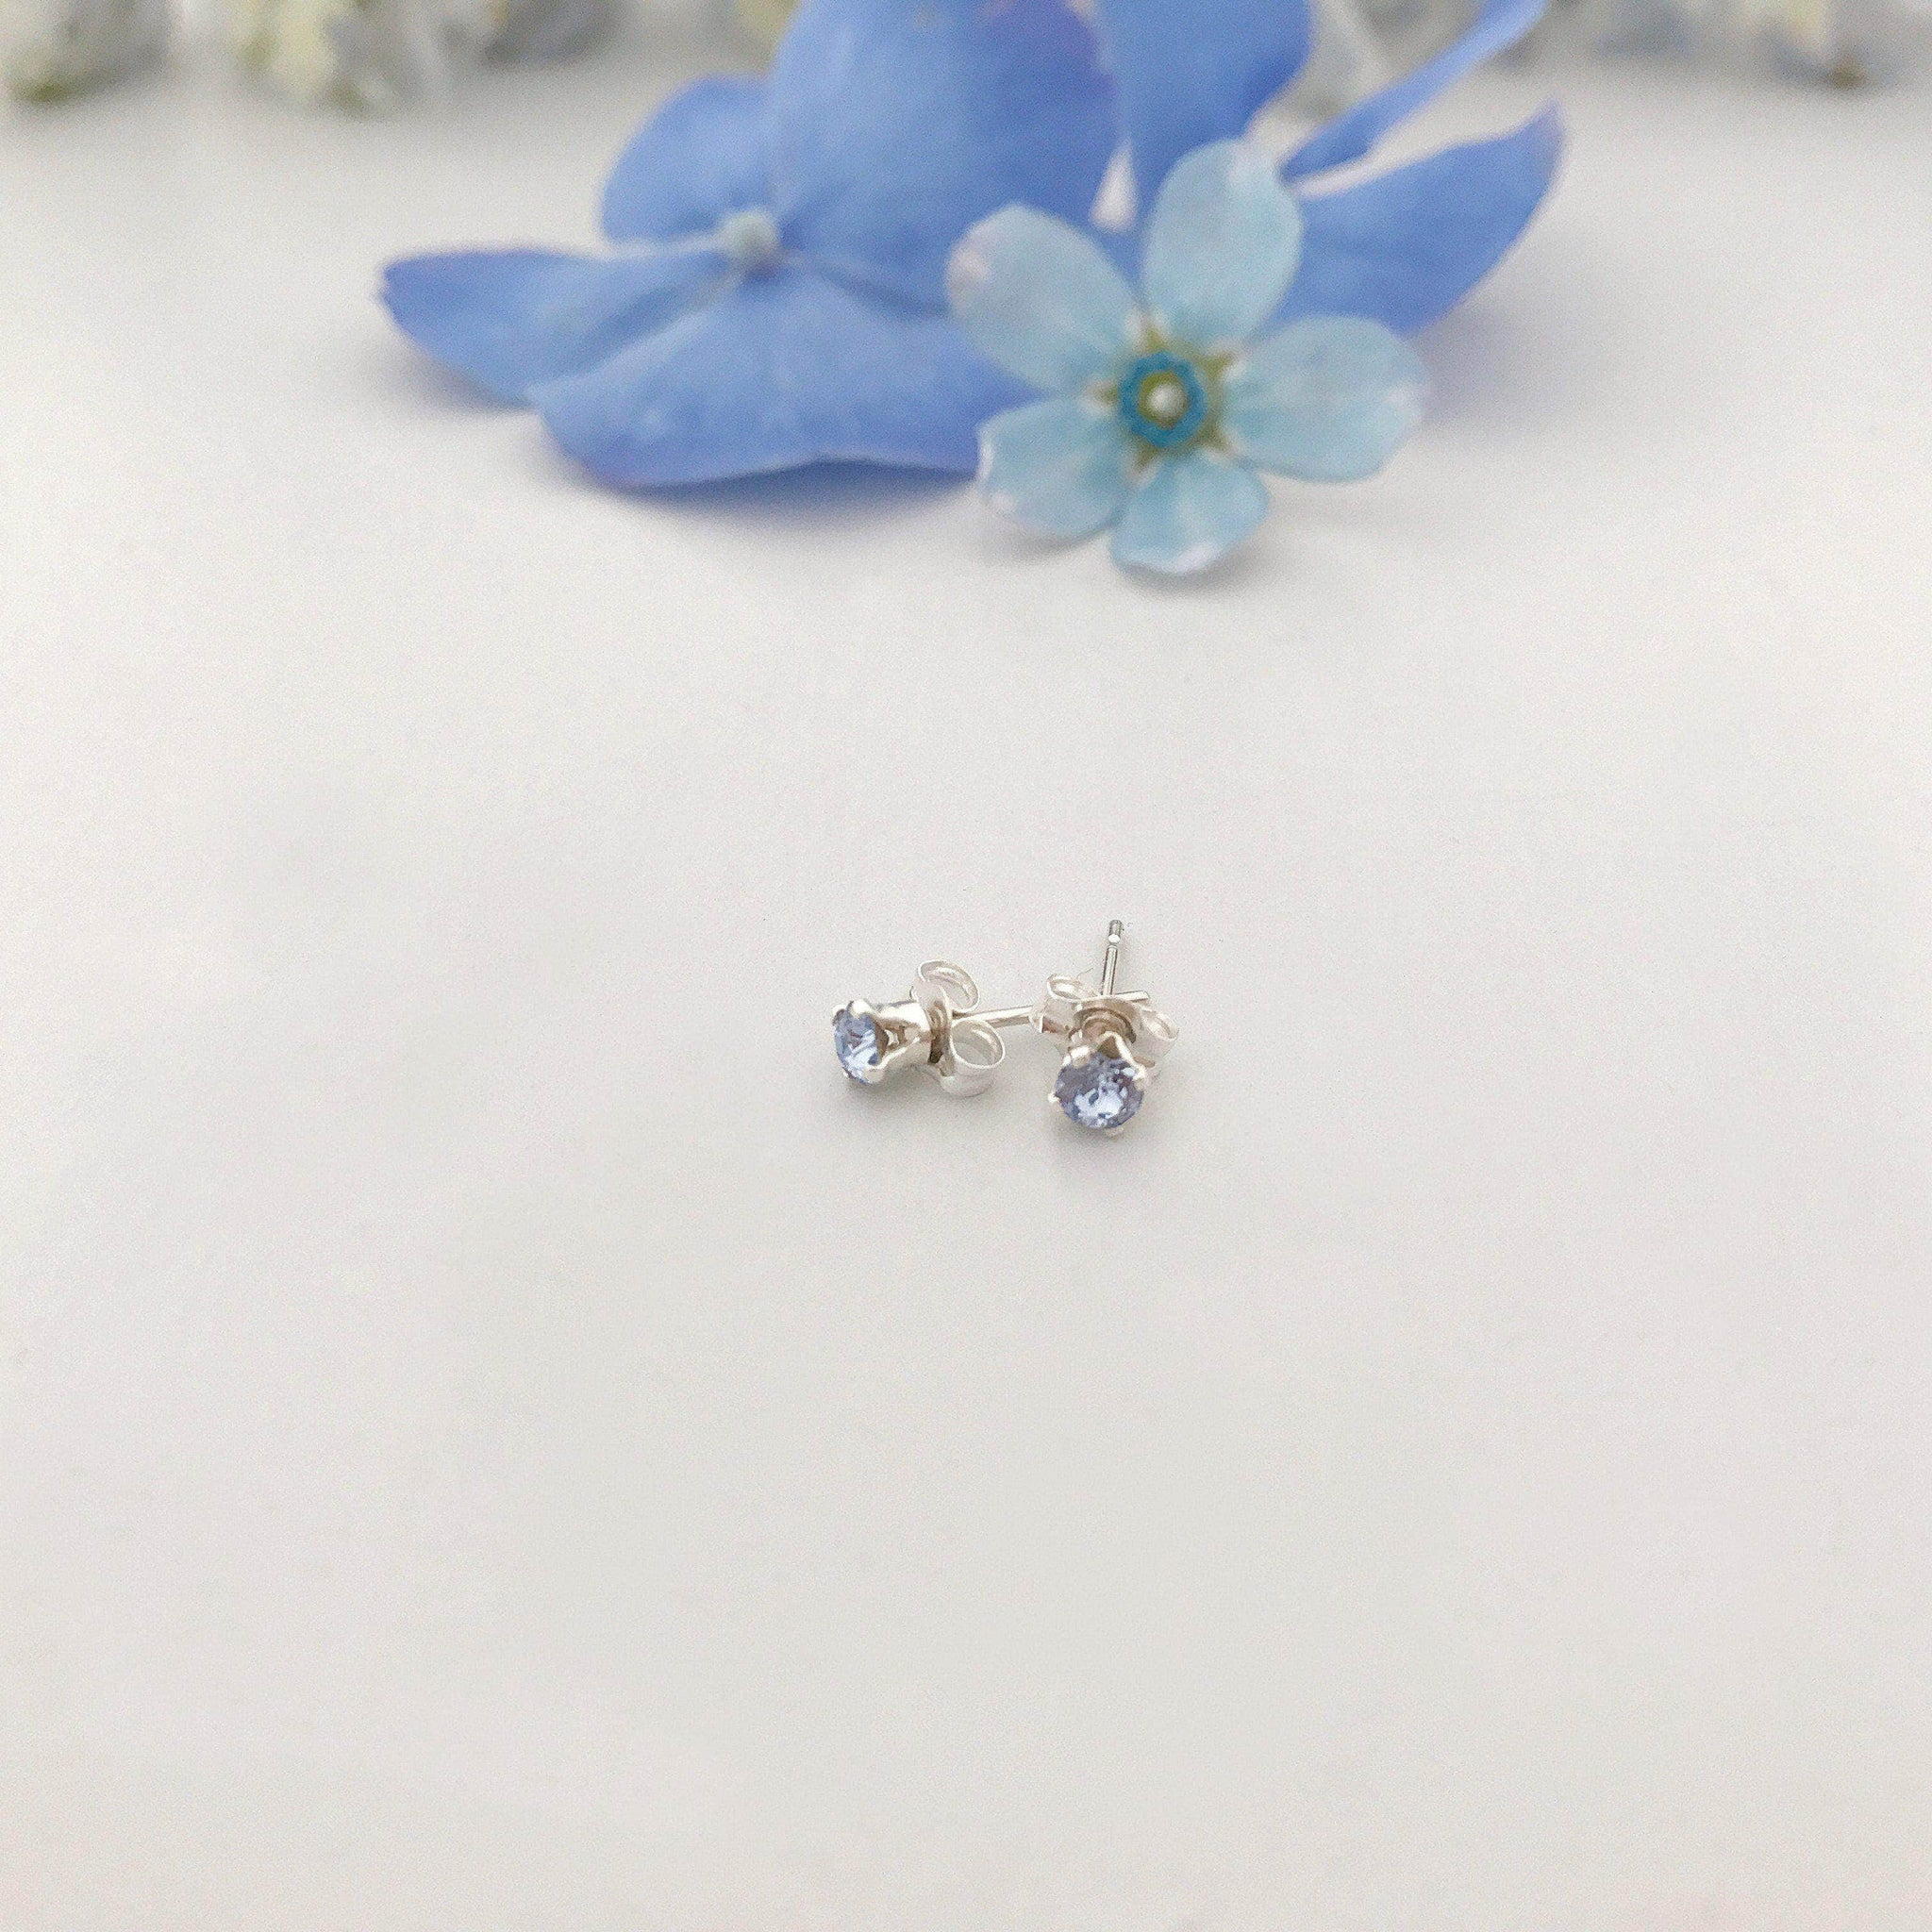 Something blue crystal stud wedding earrings - 'Ida'